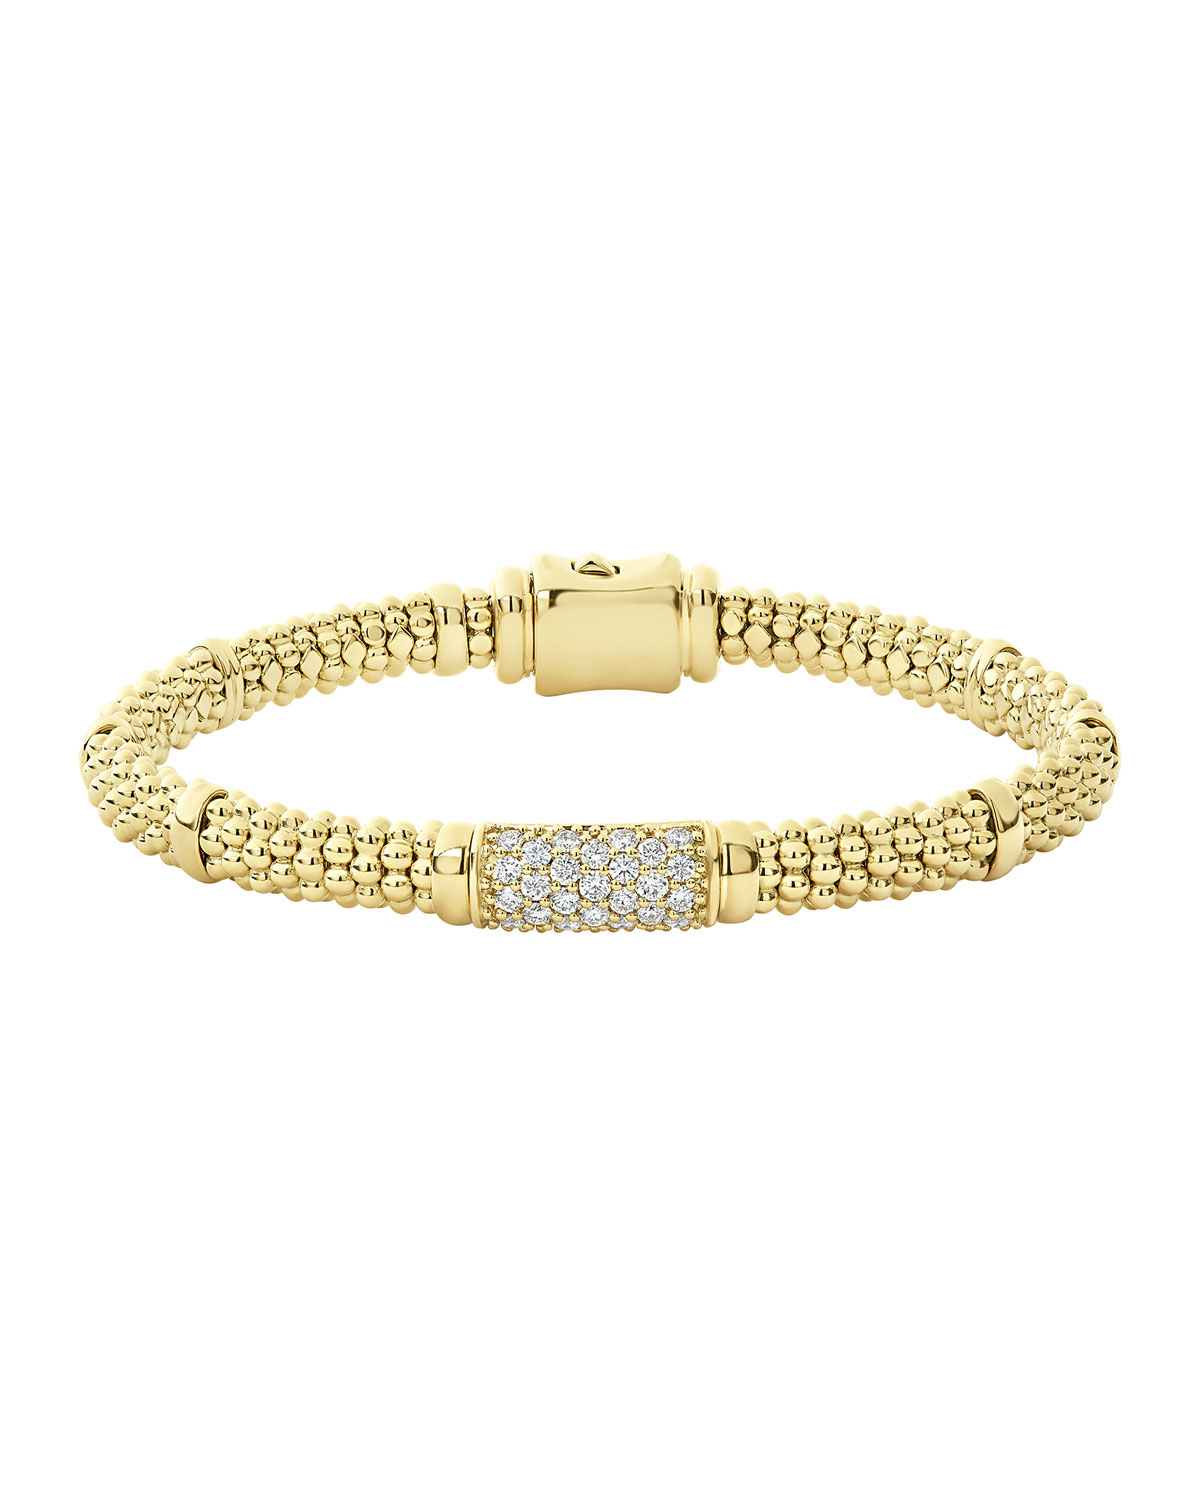 Lagos 18k Caviar Gold 15mm Rope Bracelet w/ Diamonds